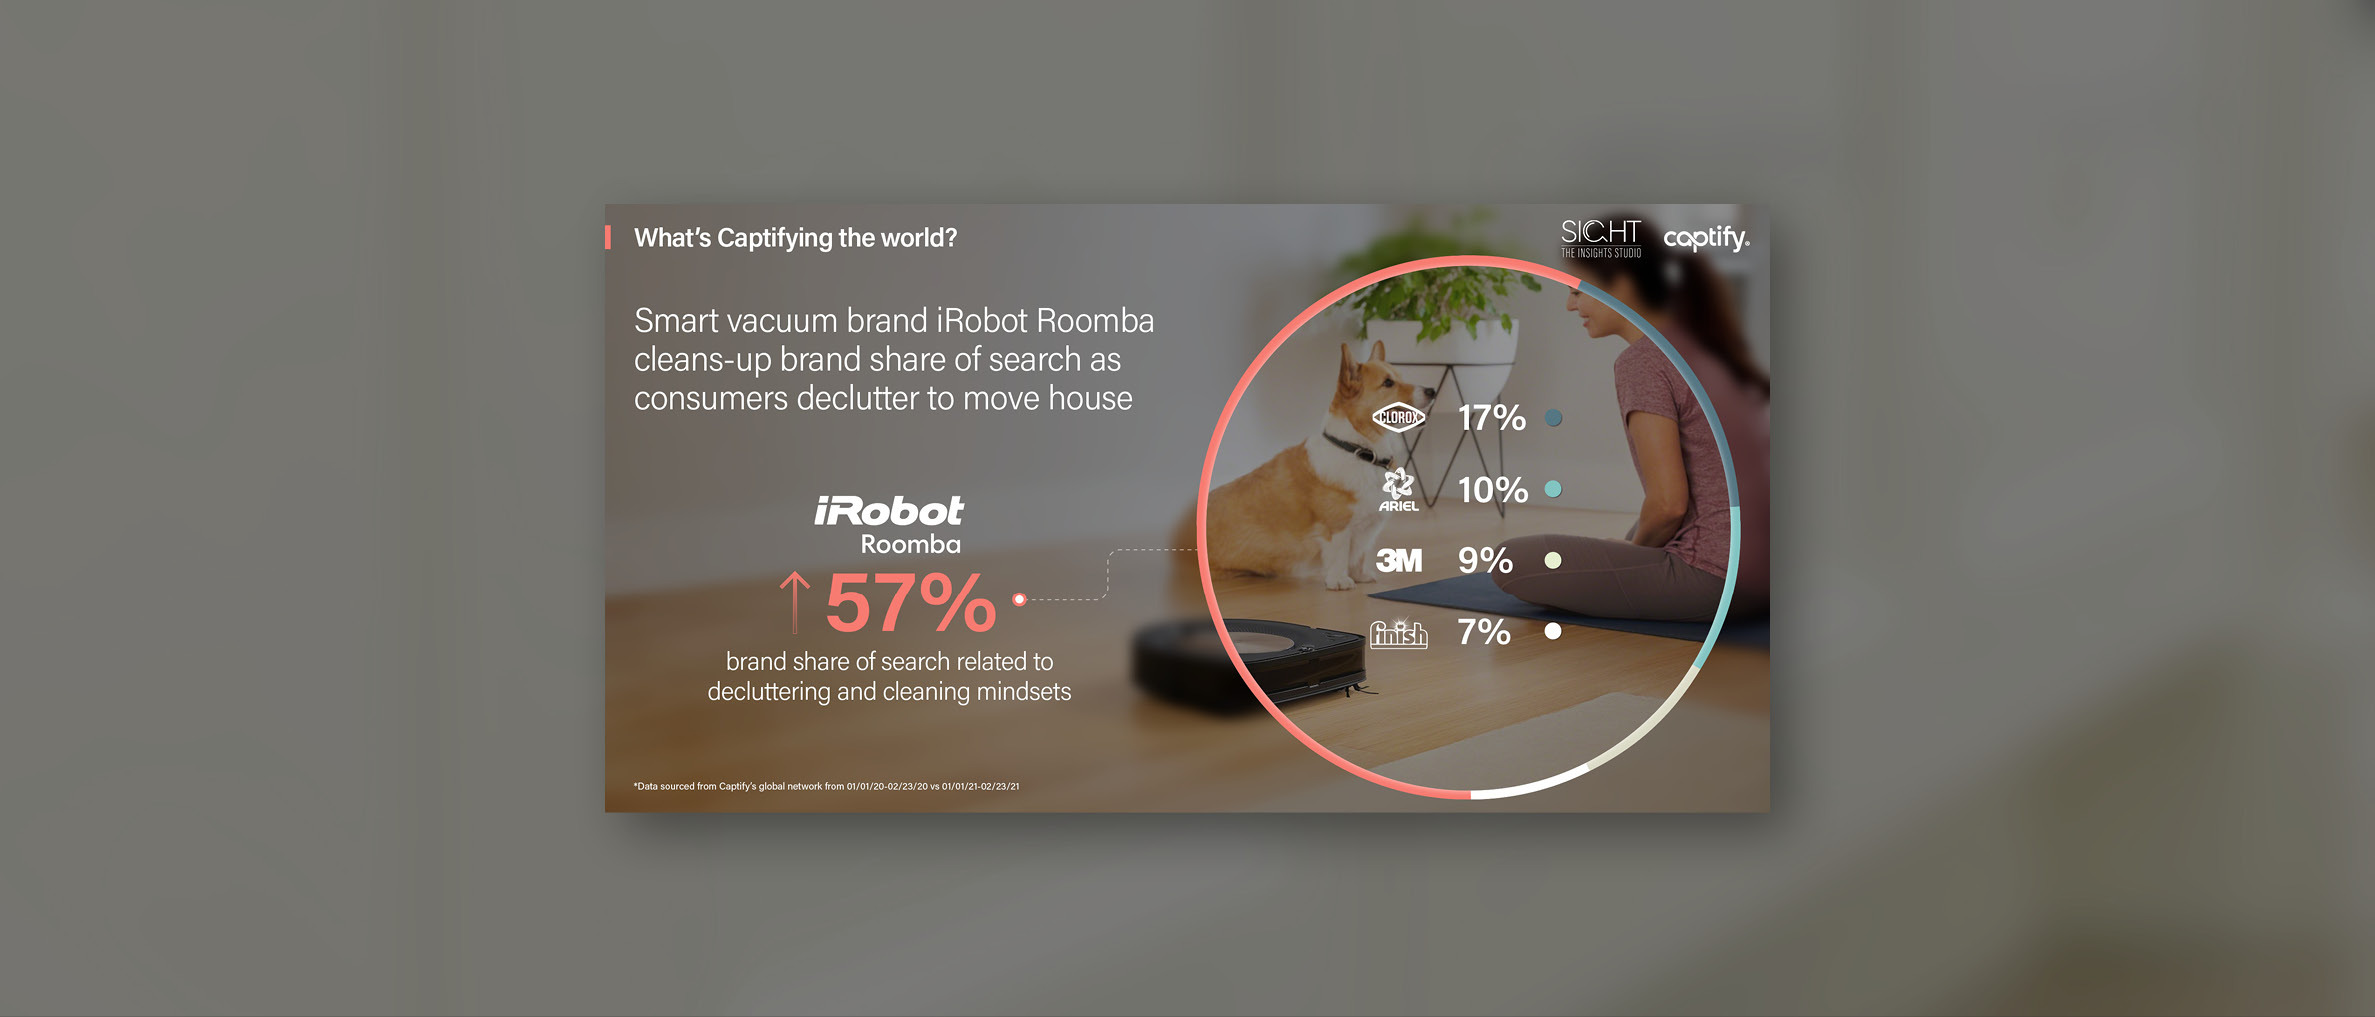 What's Captifying the world: Smart vacuum brand iRobot Roomba cleans-up brand share of search as consumers declutter to move house